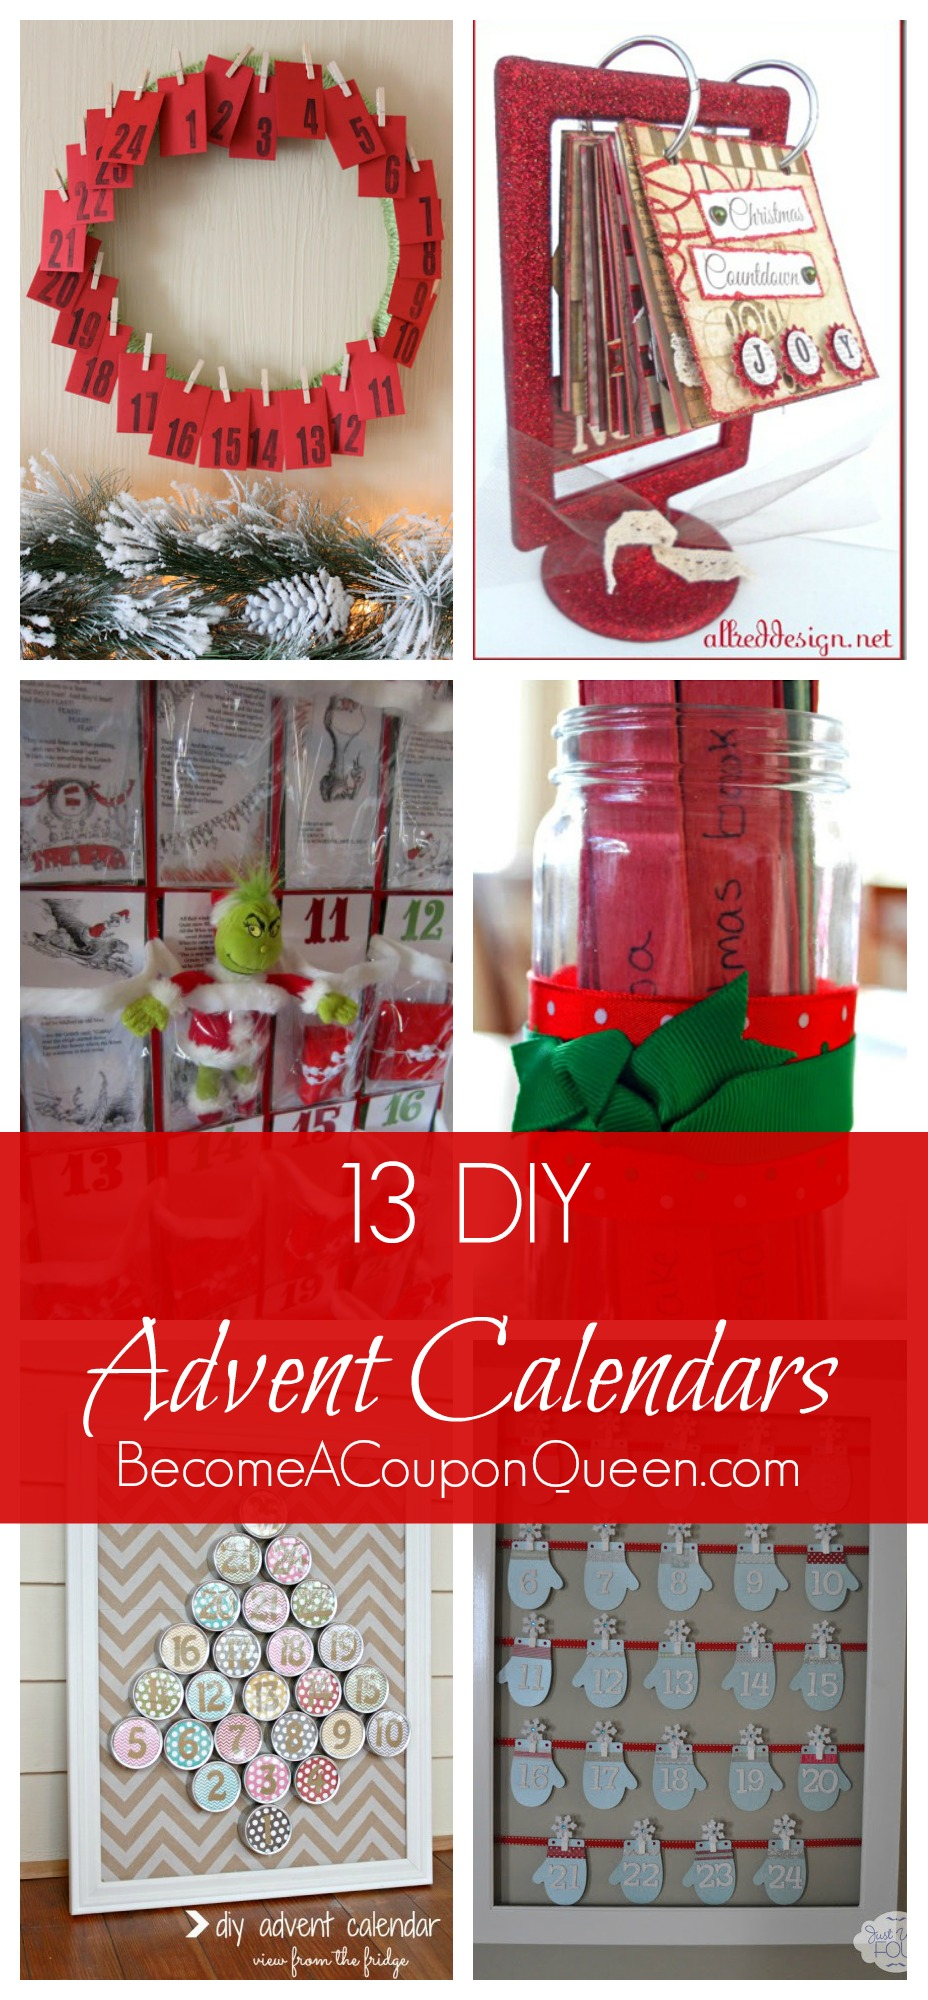 13 Do-It-Yourself Advent Calendars